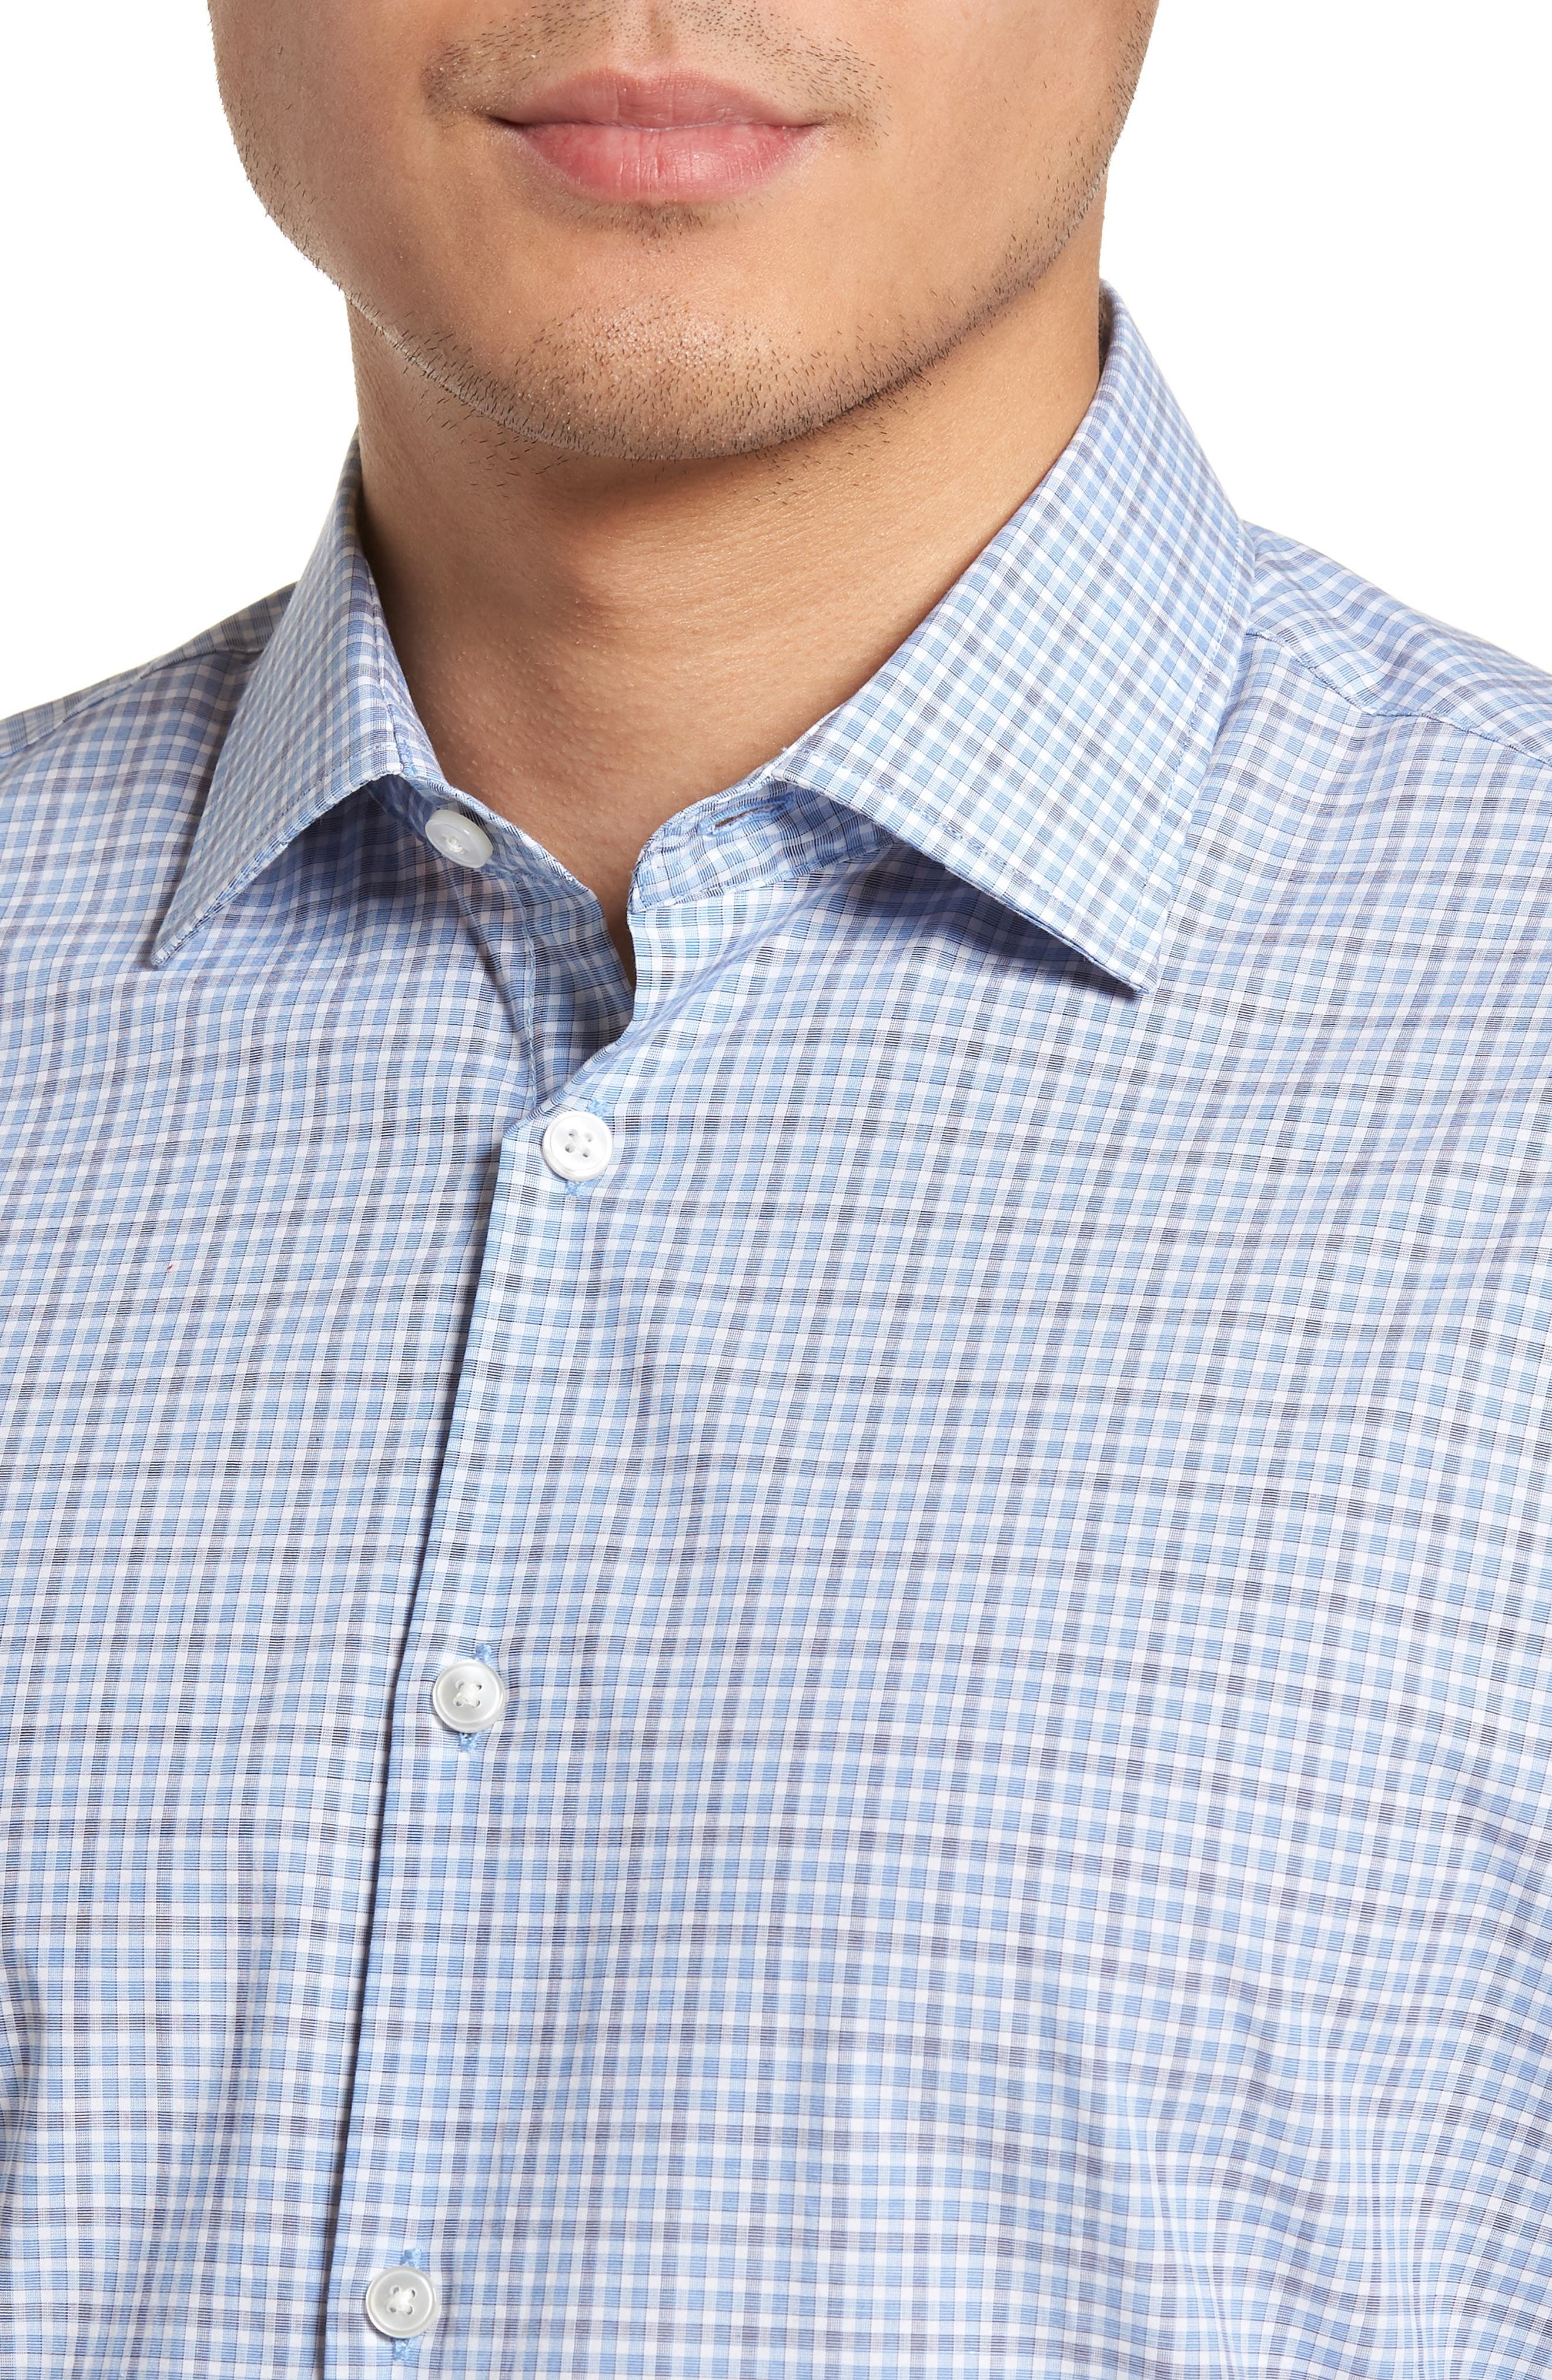 Regular Fit Stretch Check Dress Shirt,                             Alternate thumbnail 2, color,                             Sky